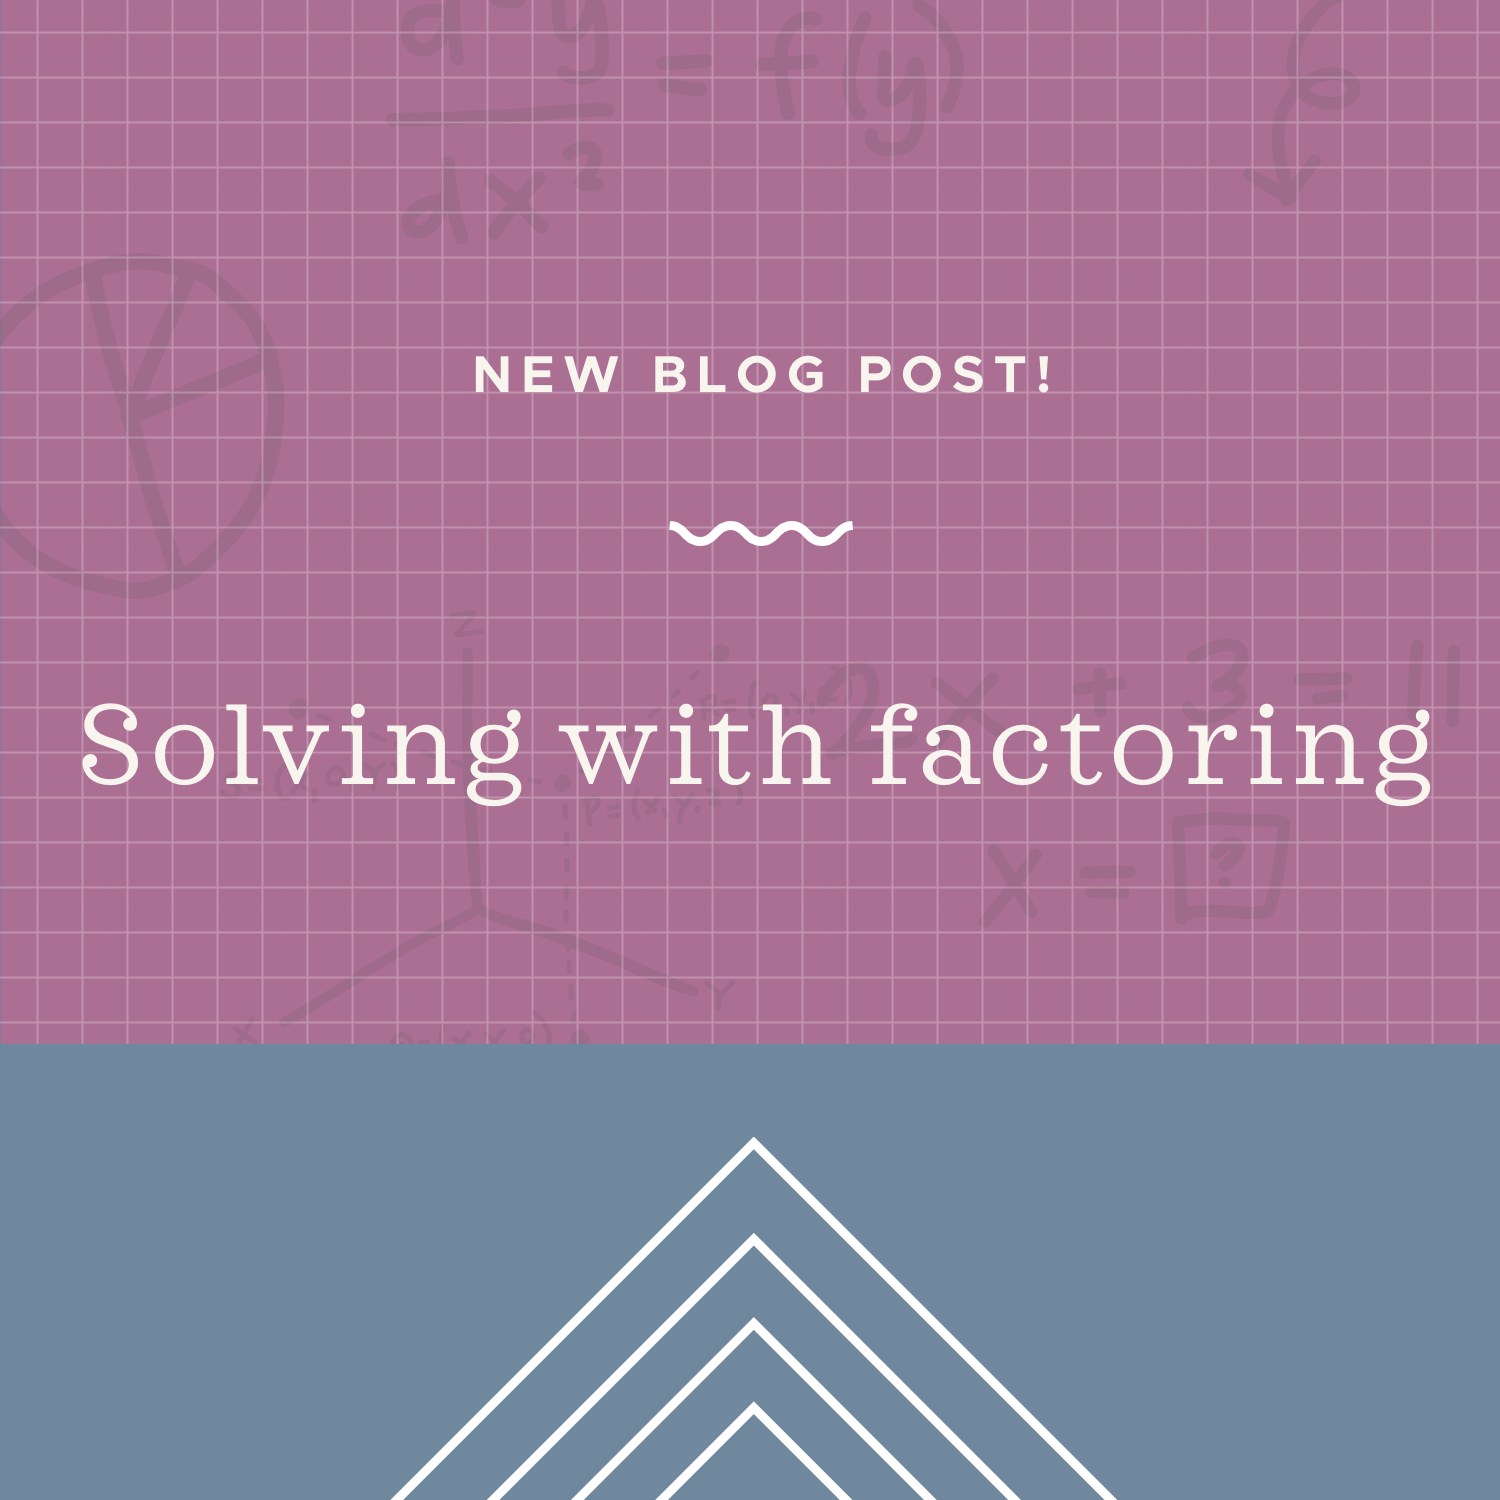 Solving with factoring.jpeg